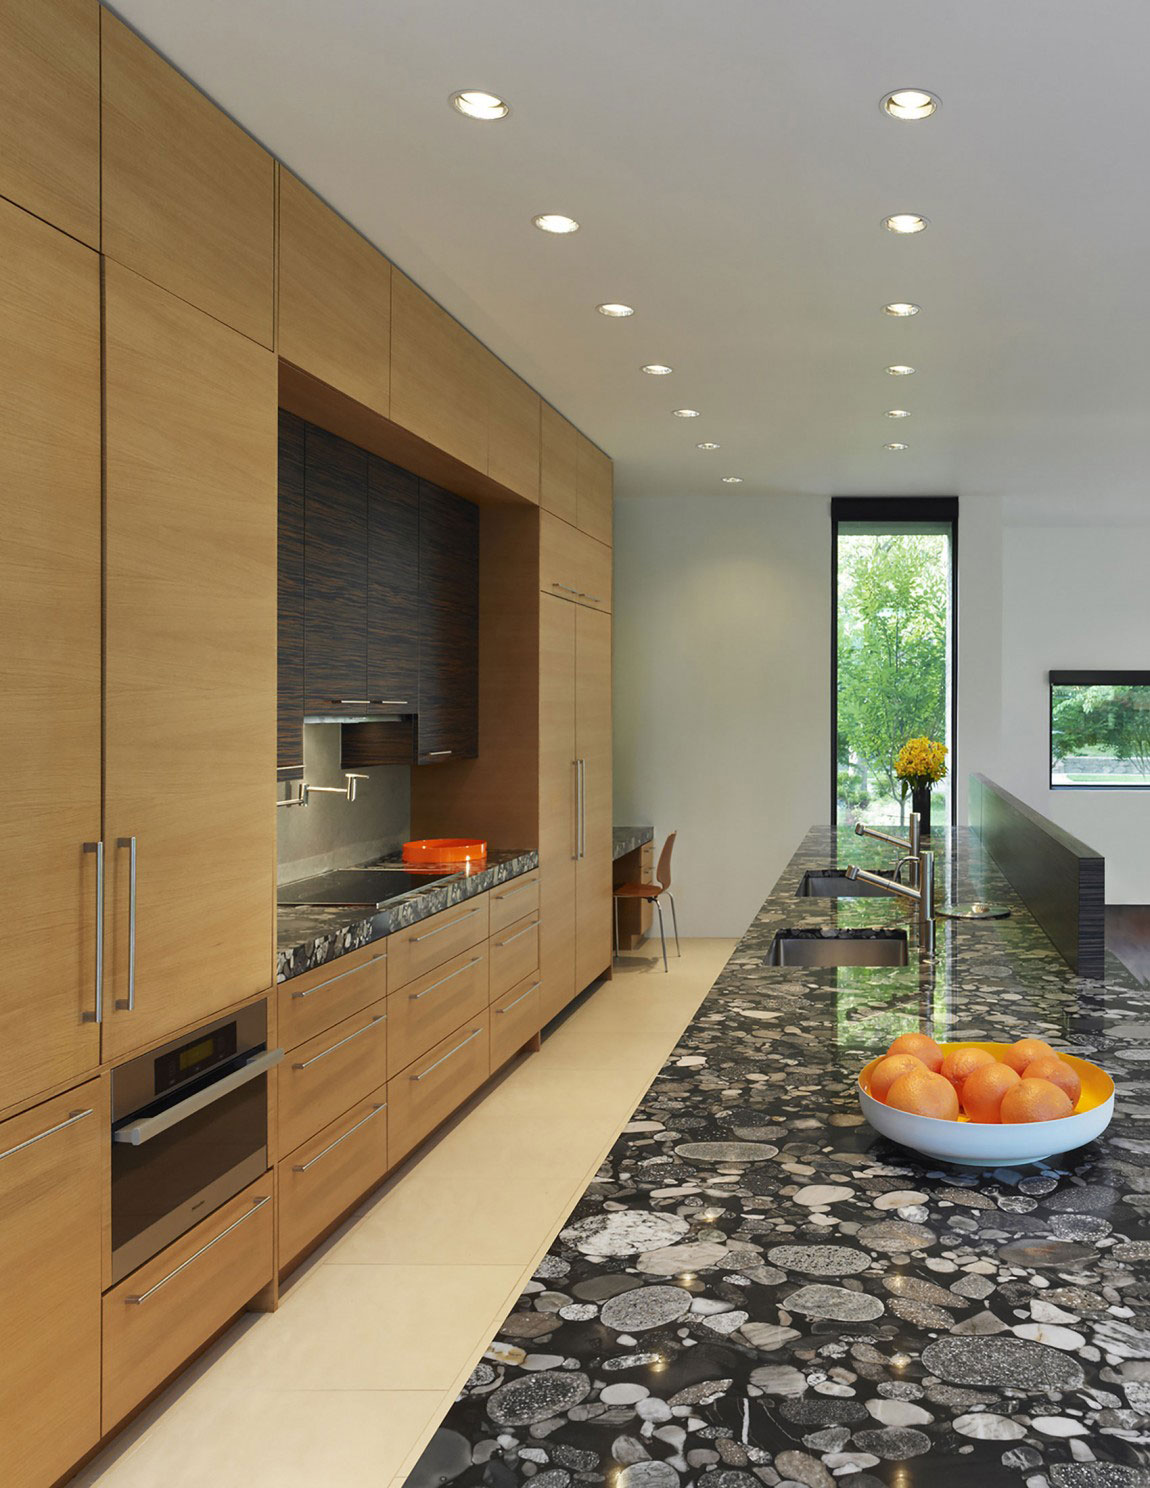 The Brandywine-house-is-an-interior-design-and-architecture-inspiration-8 The Brandywine house is an inspiration for interior design and architecture